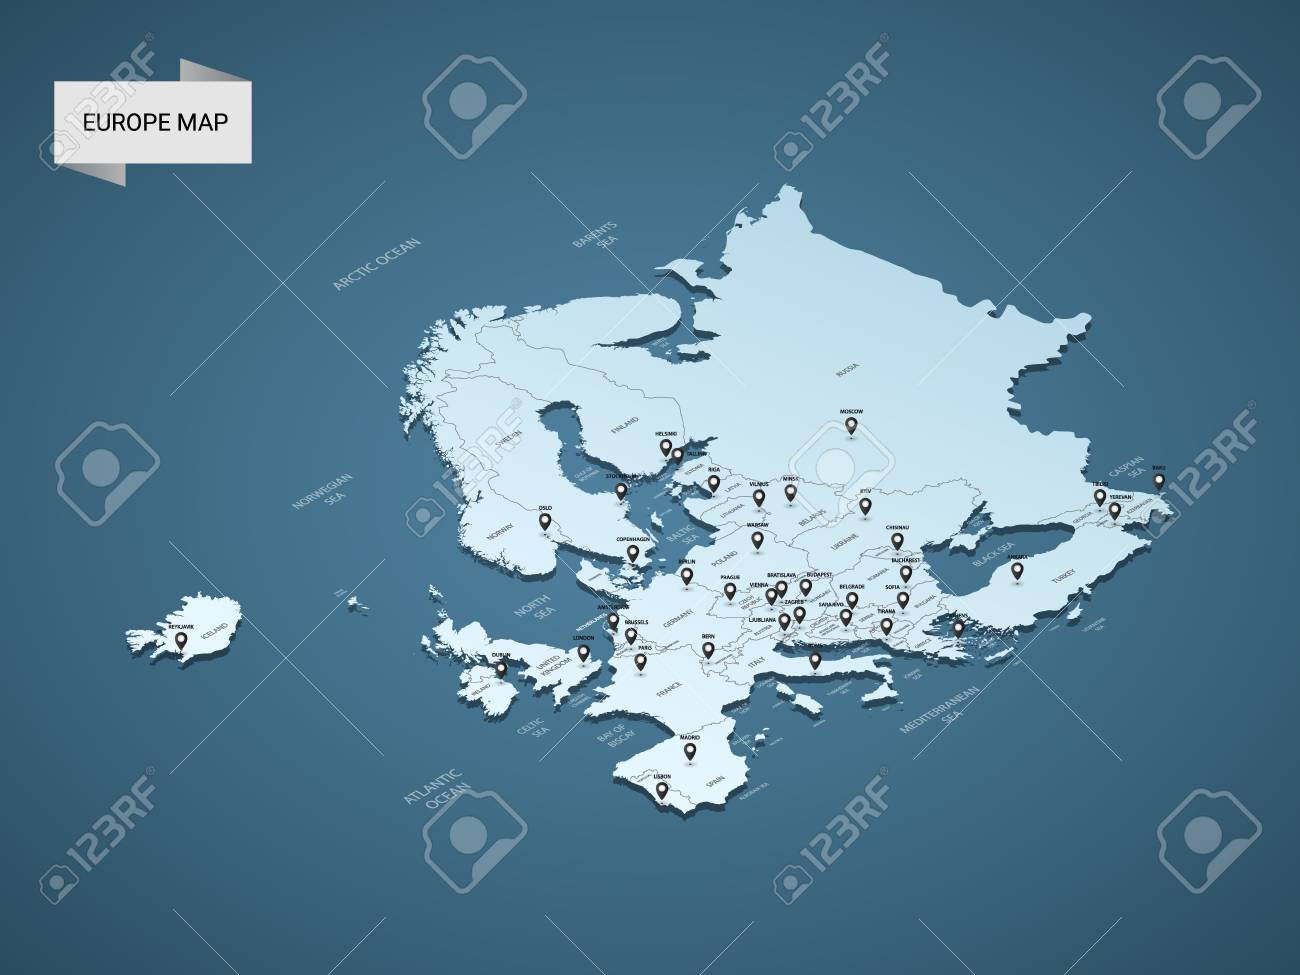 Isometric 3D Europe map, vector illustration with cities, borders, capital, administrative divisions and pointer marks; gradient blue background. Concept for infographic. - 111124934